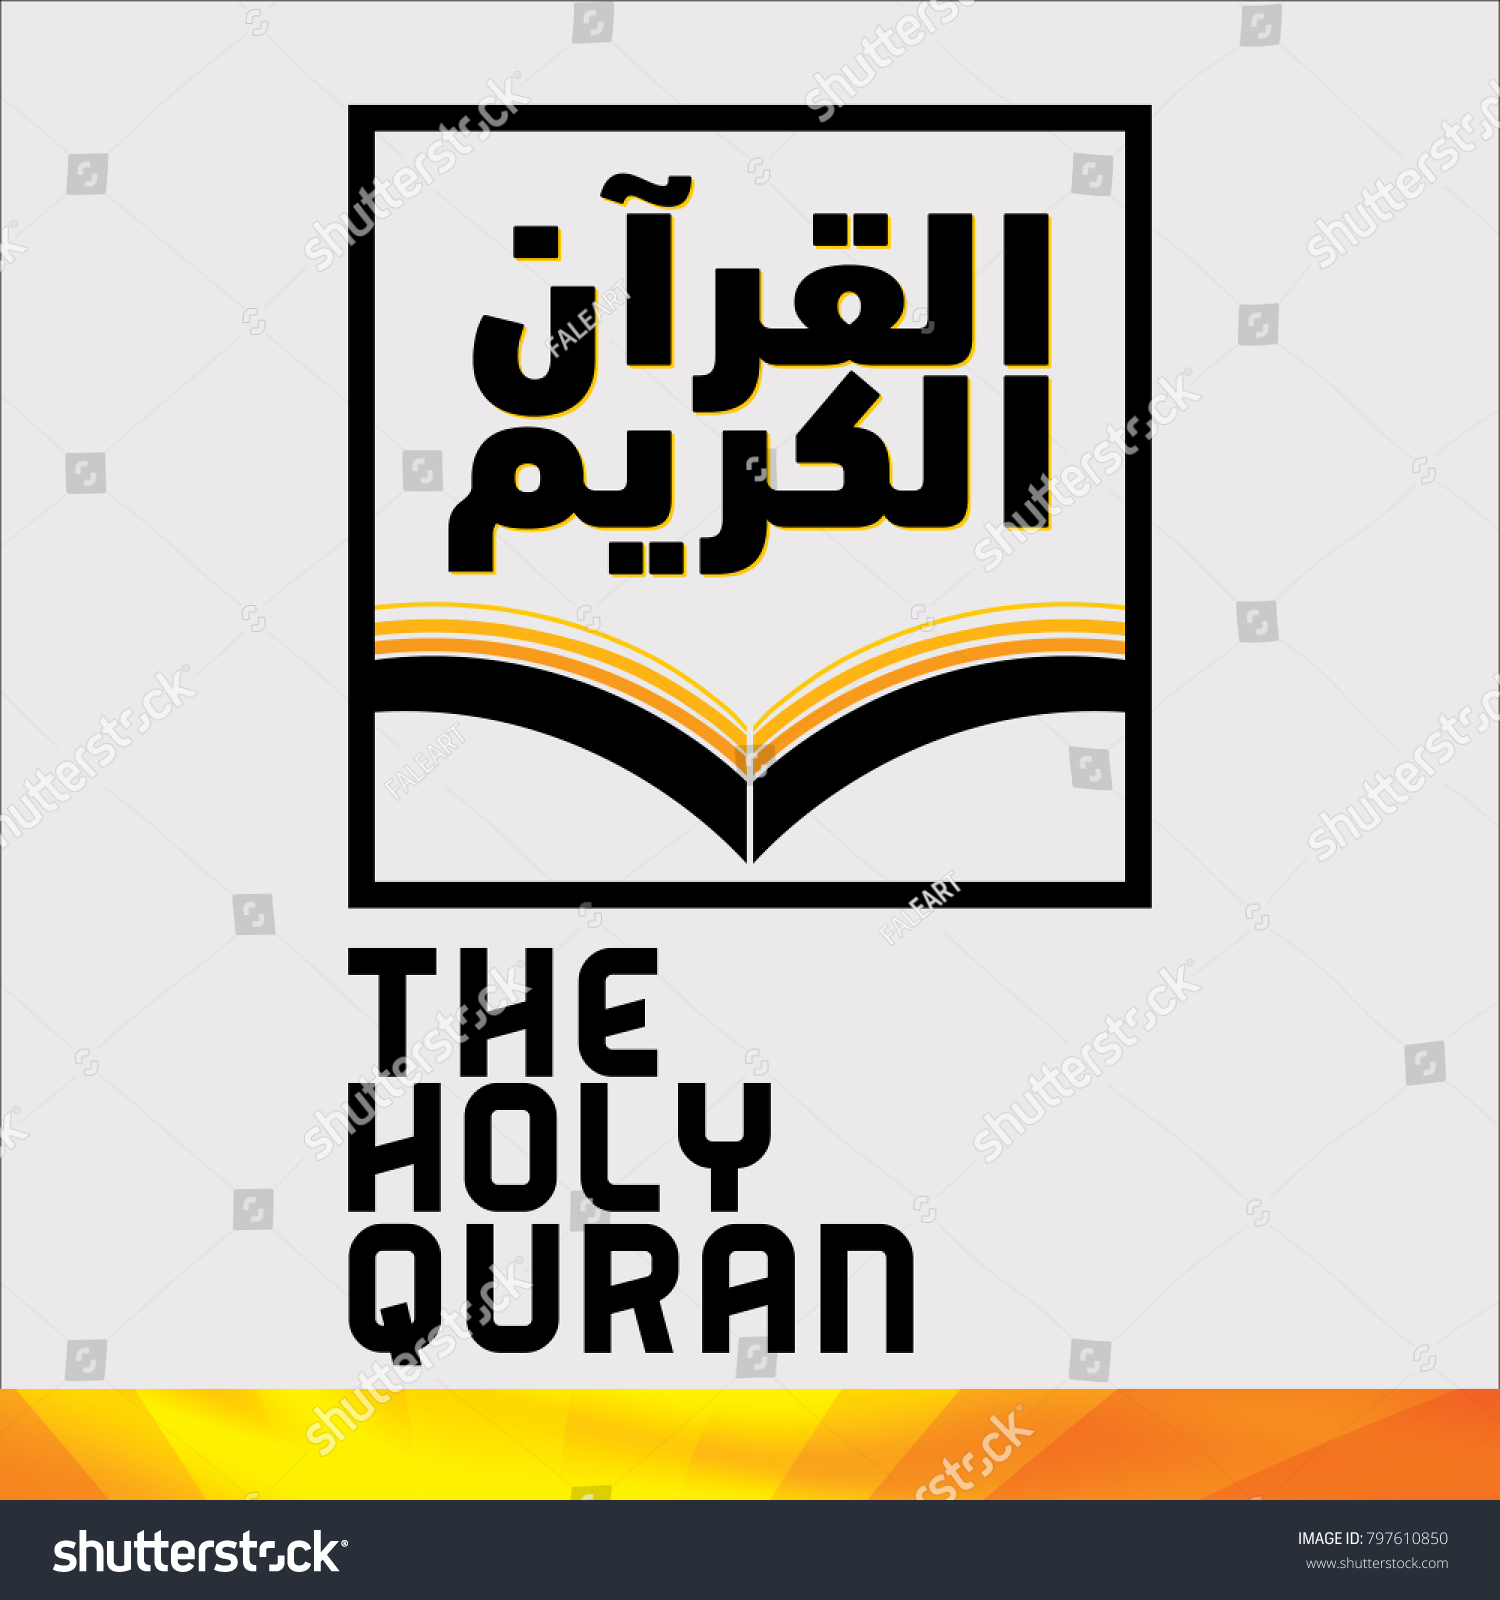 Symbol holy book quran lafadz allah stock vector 797610850 the symbol of the holy book of the quran with the lafadz of allah biocorpaavc Gallery